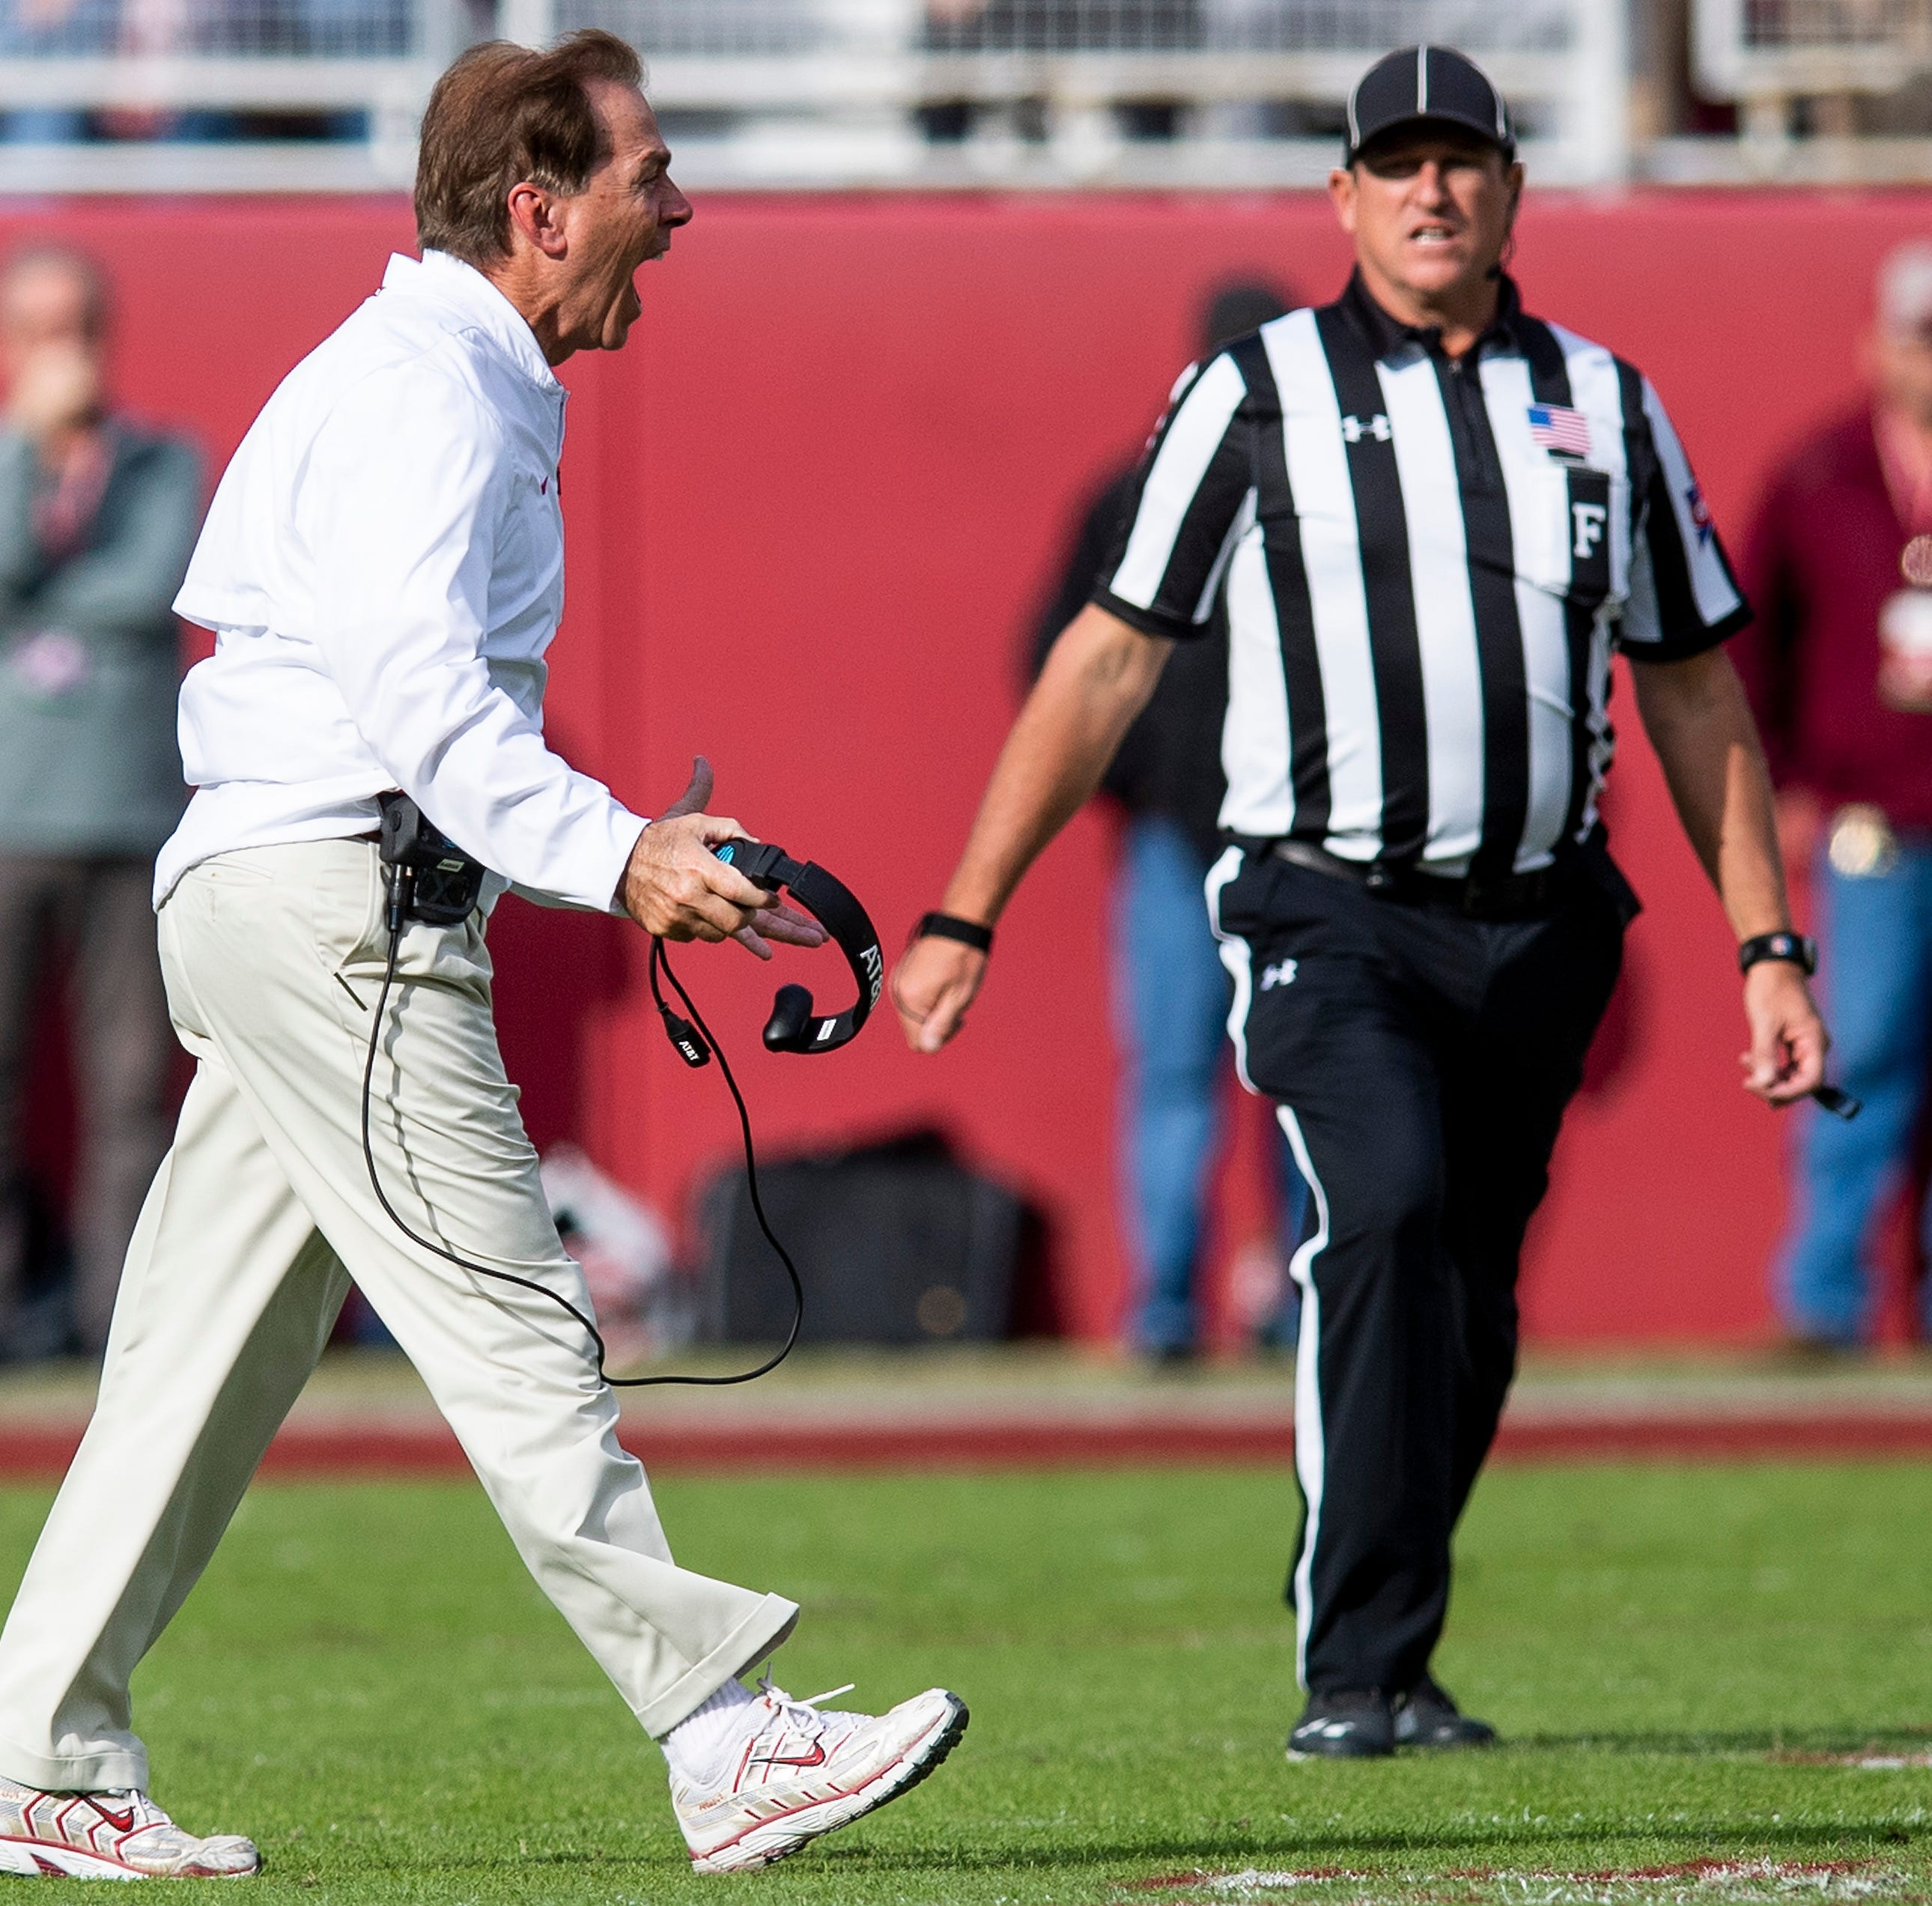 Frustrated Alabama defense refocuses after withstanding The Citadel's triple option attack